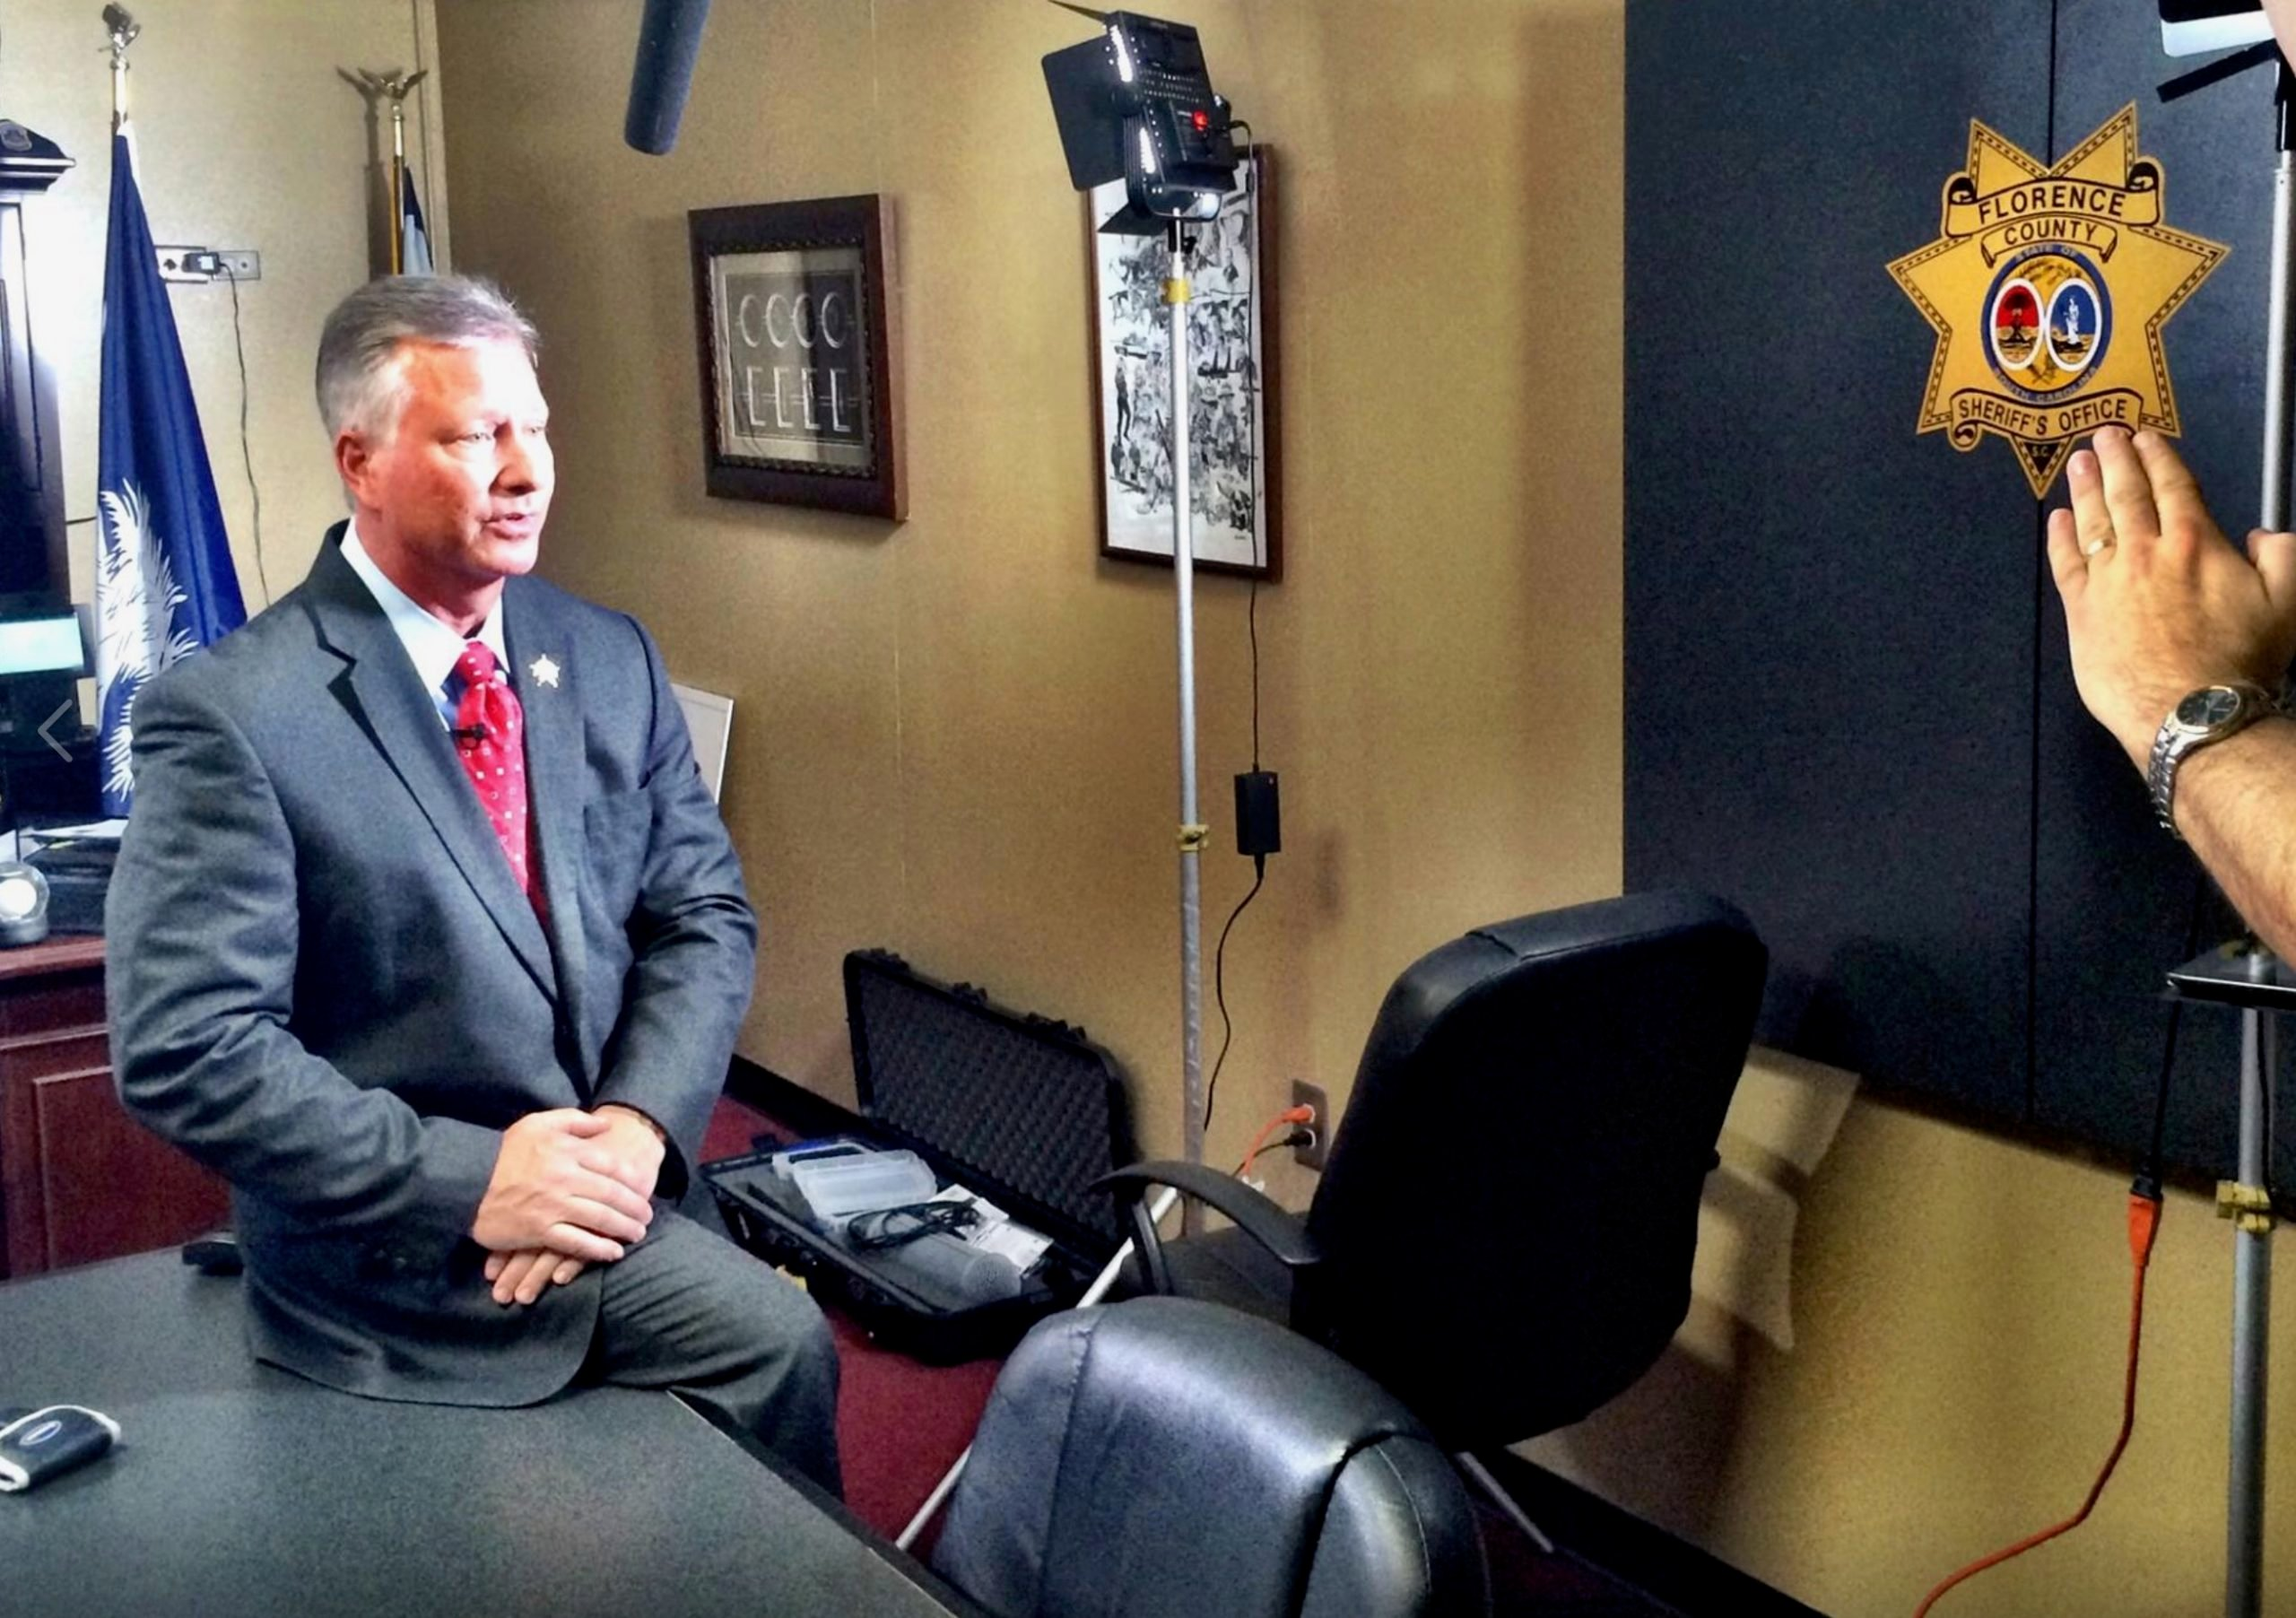 Suspended SC Sheriff Kenney Boone